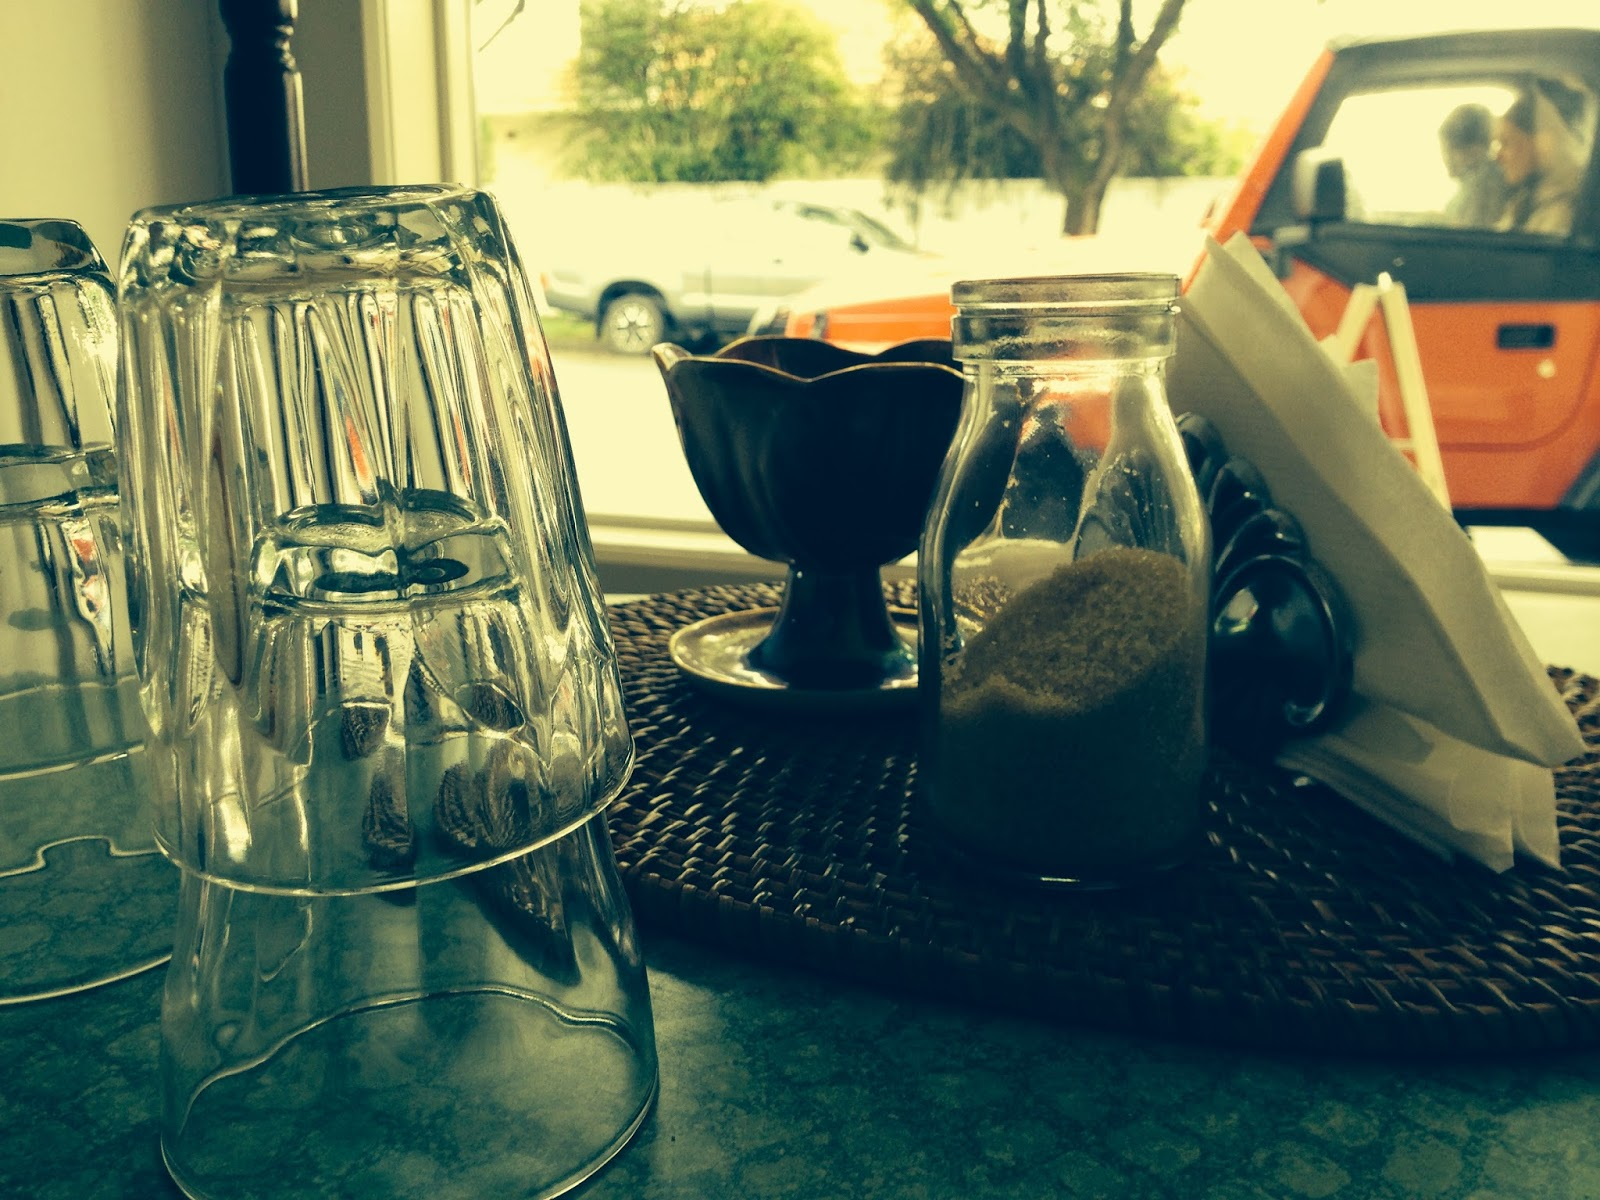 Table setting at Nettle Raw Cafe, West Croydon